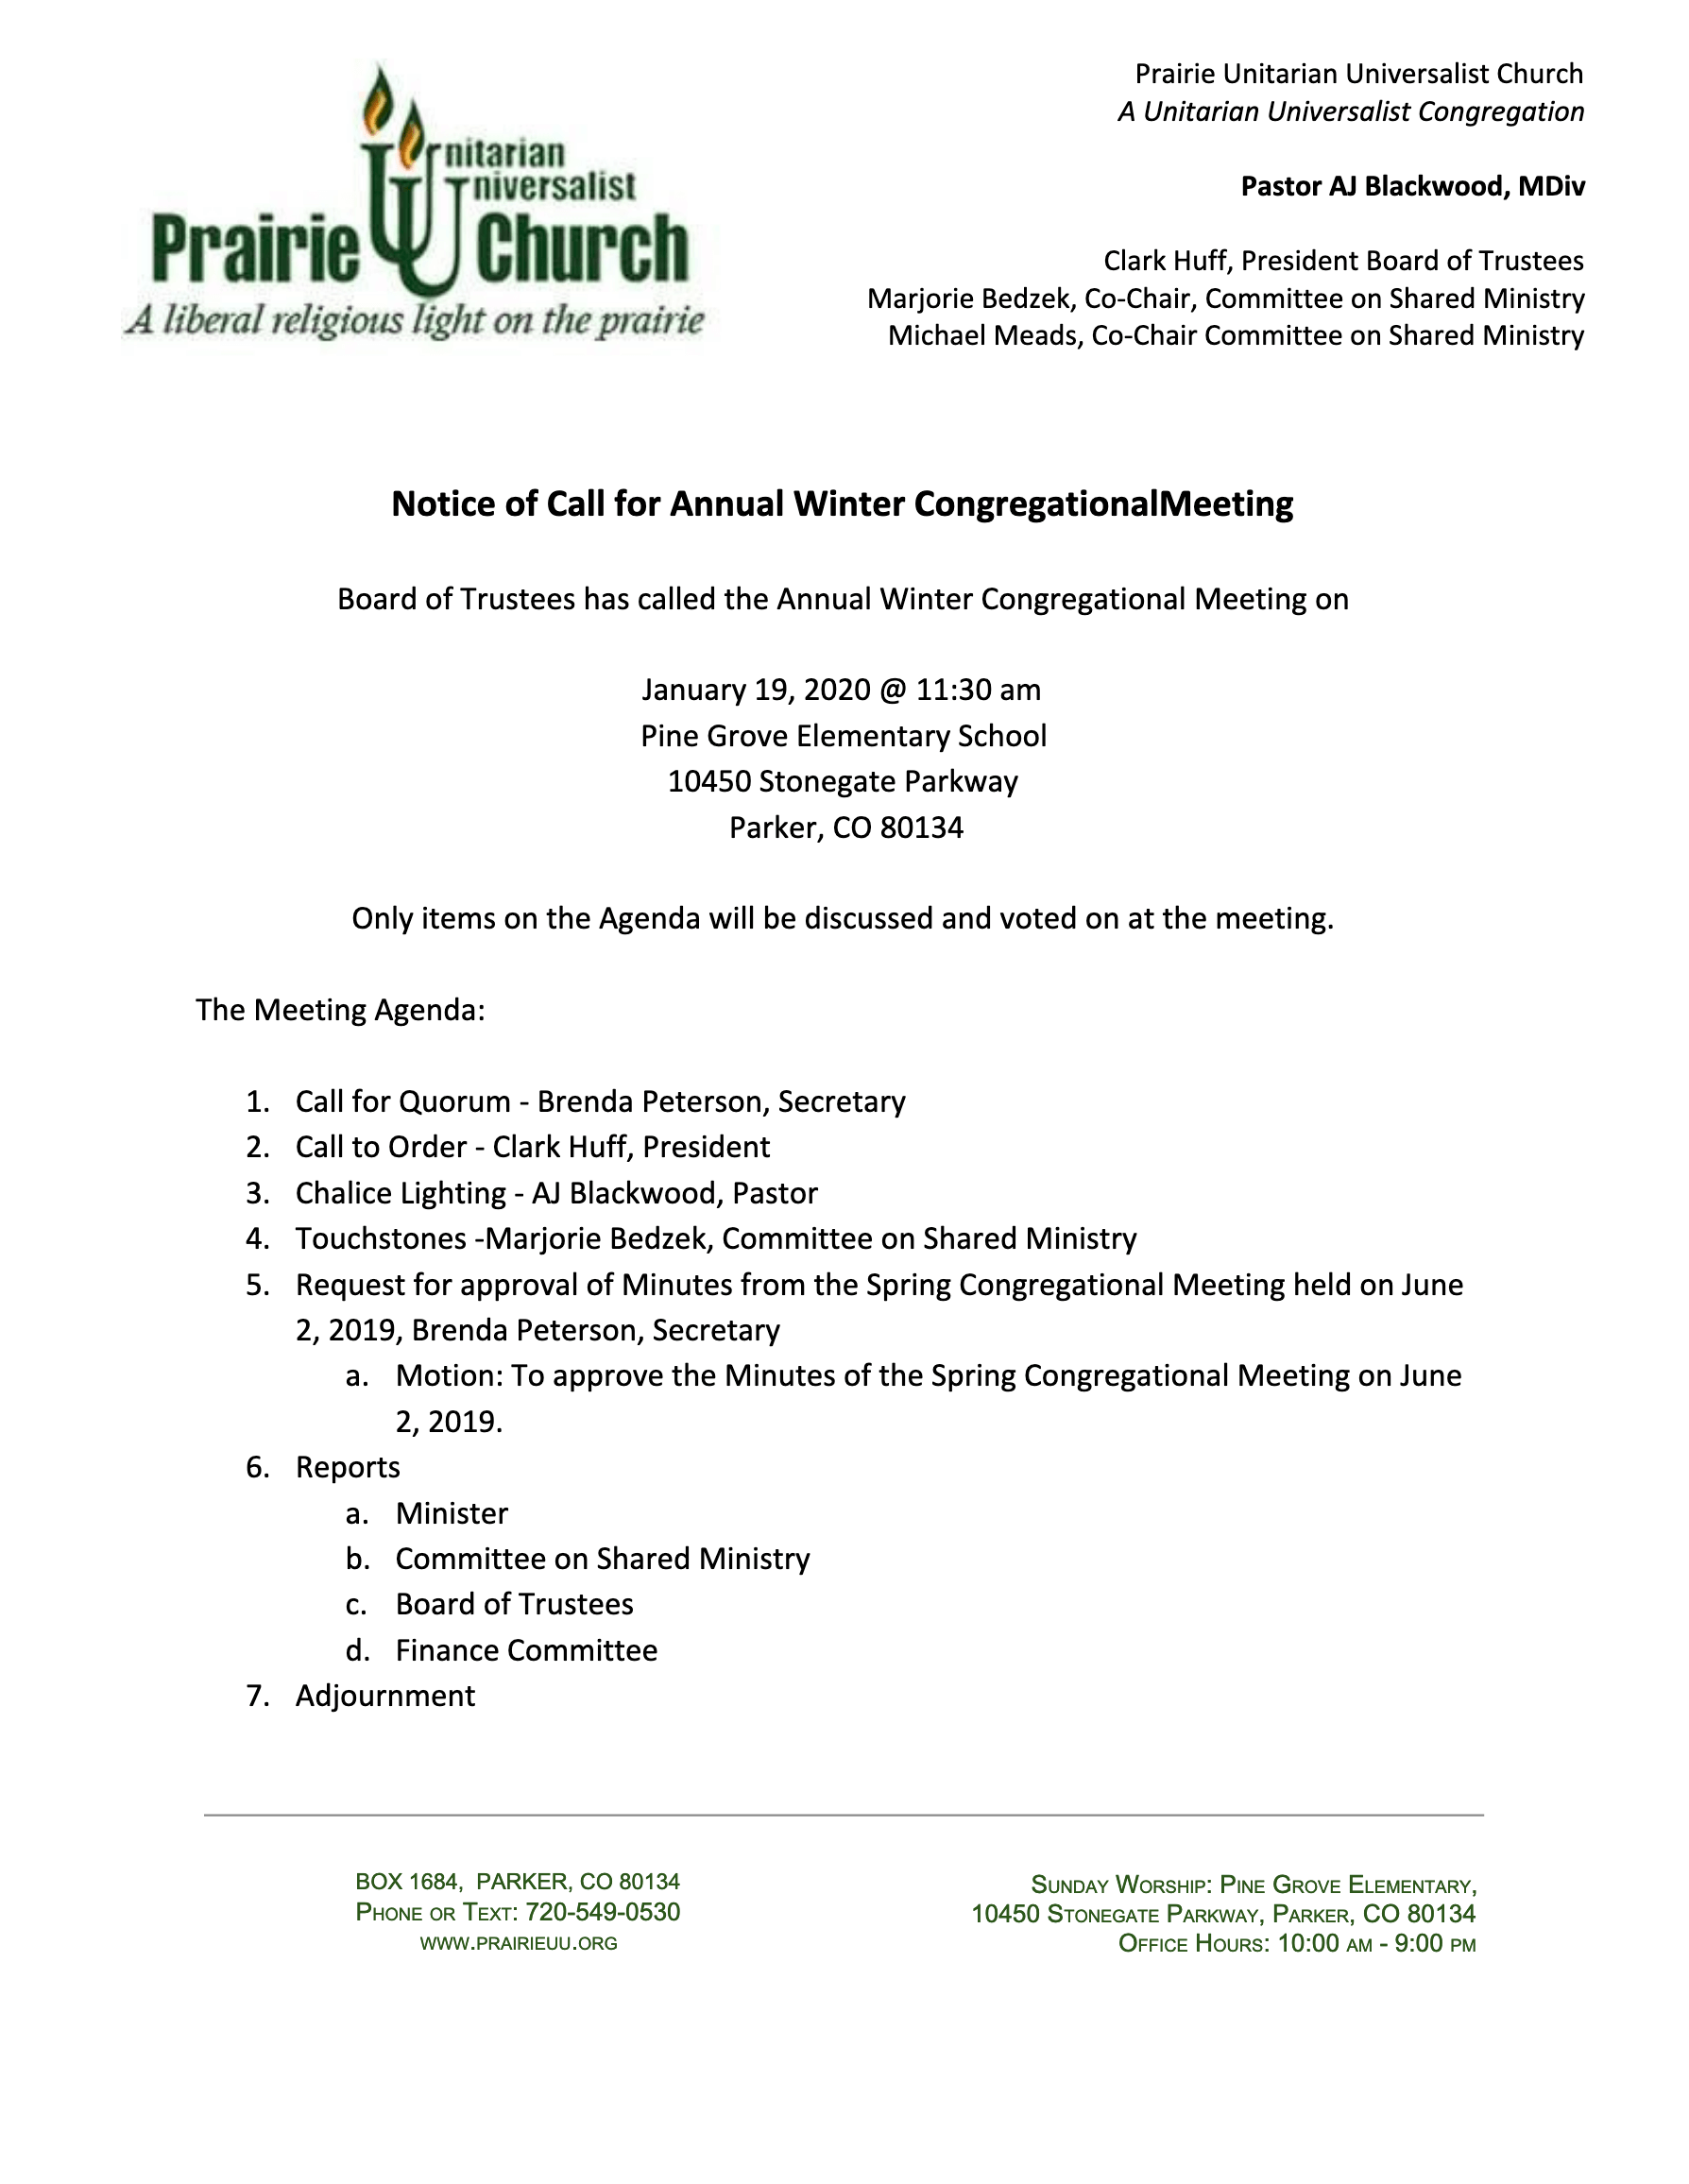 Prairie Congregational Meeting - January 19, 2020